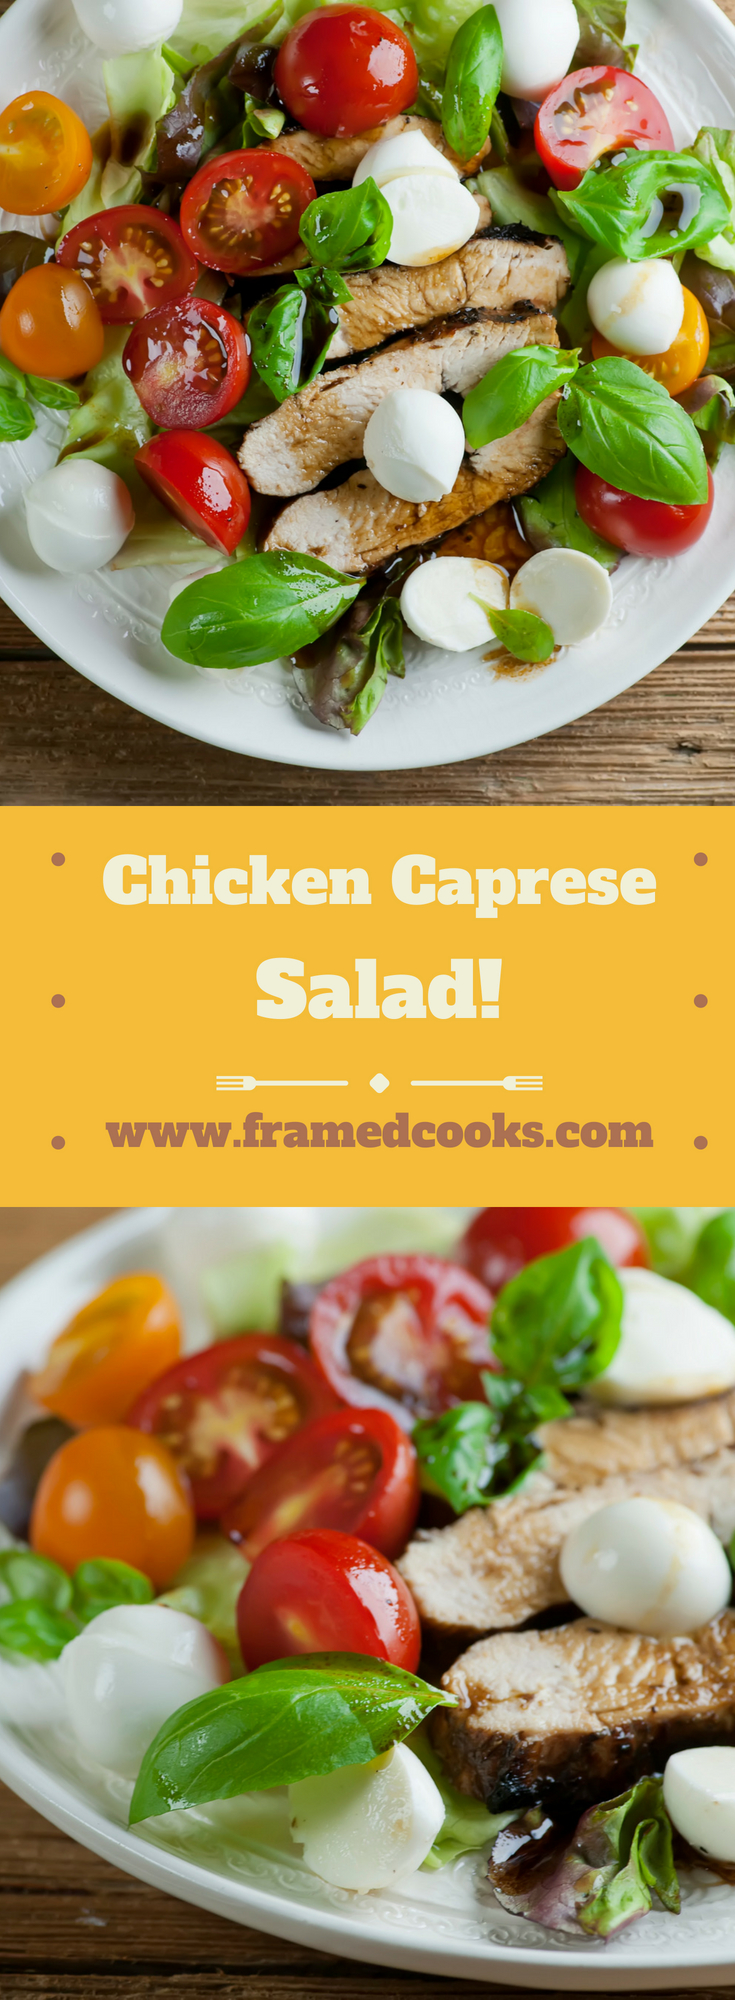 This easy recipe for chicken caprese salad takes the classic mozzarella, tomato and lettuce salad and adds grilled chicken and a balsamic dressing.